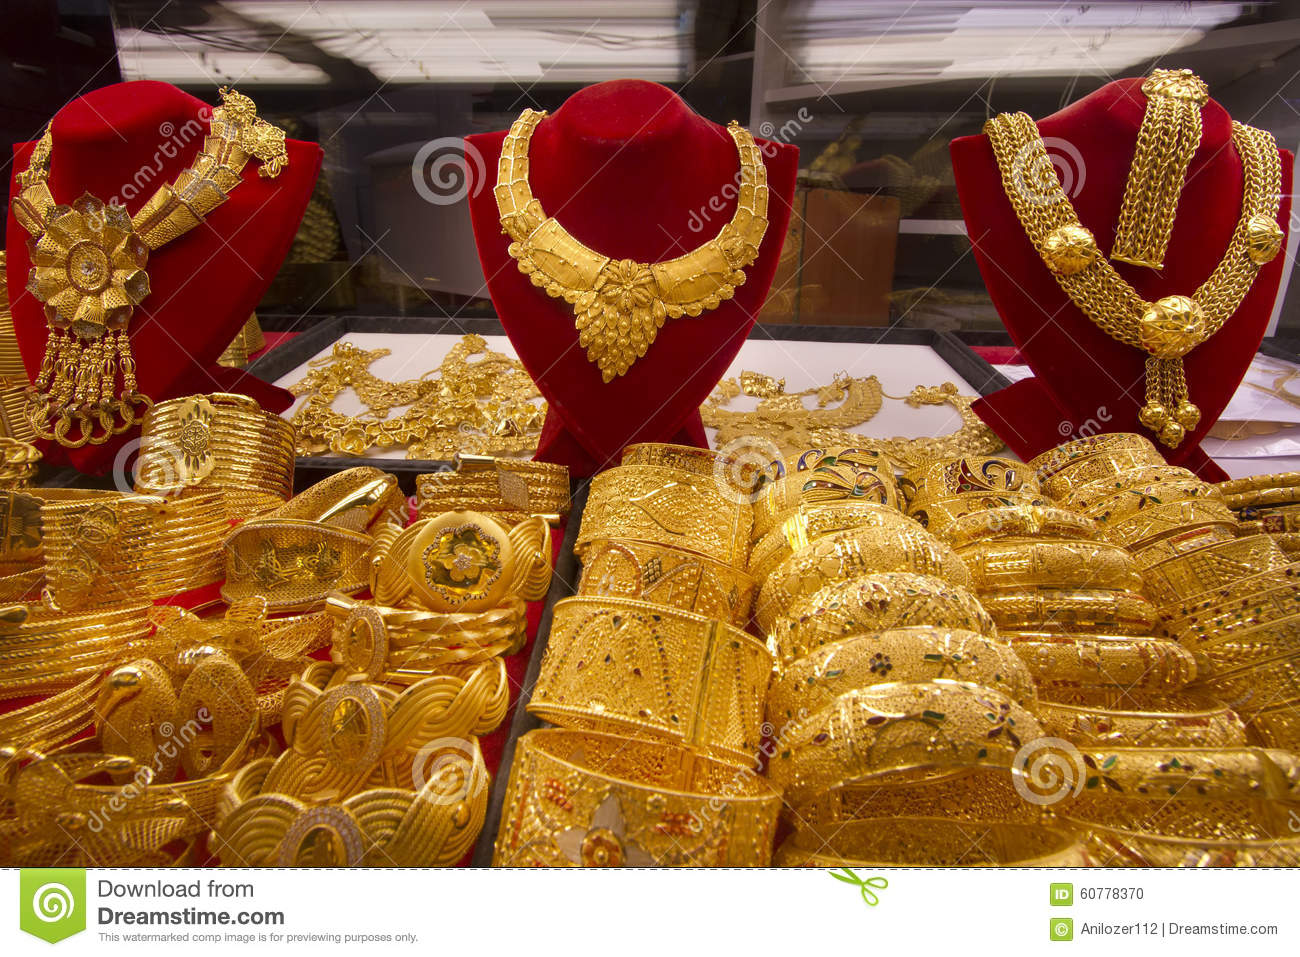 showcase asia souq middle east uae jewellery stock display window emirates gold jewelry city arab united photo dubai